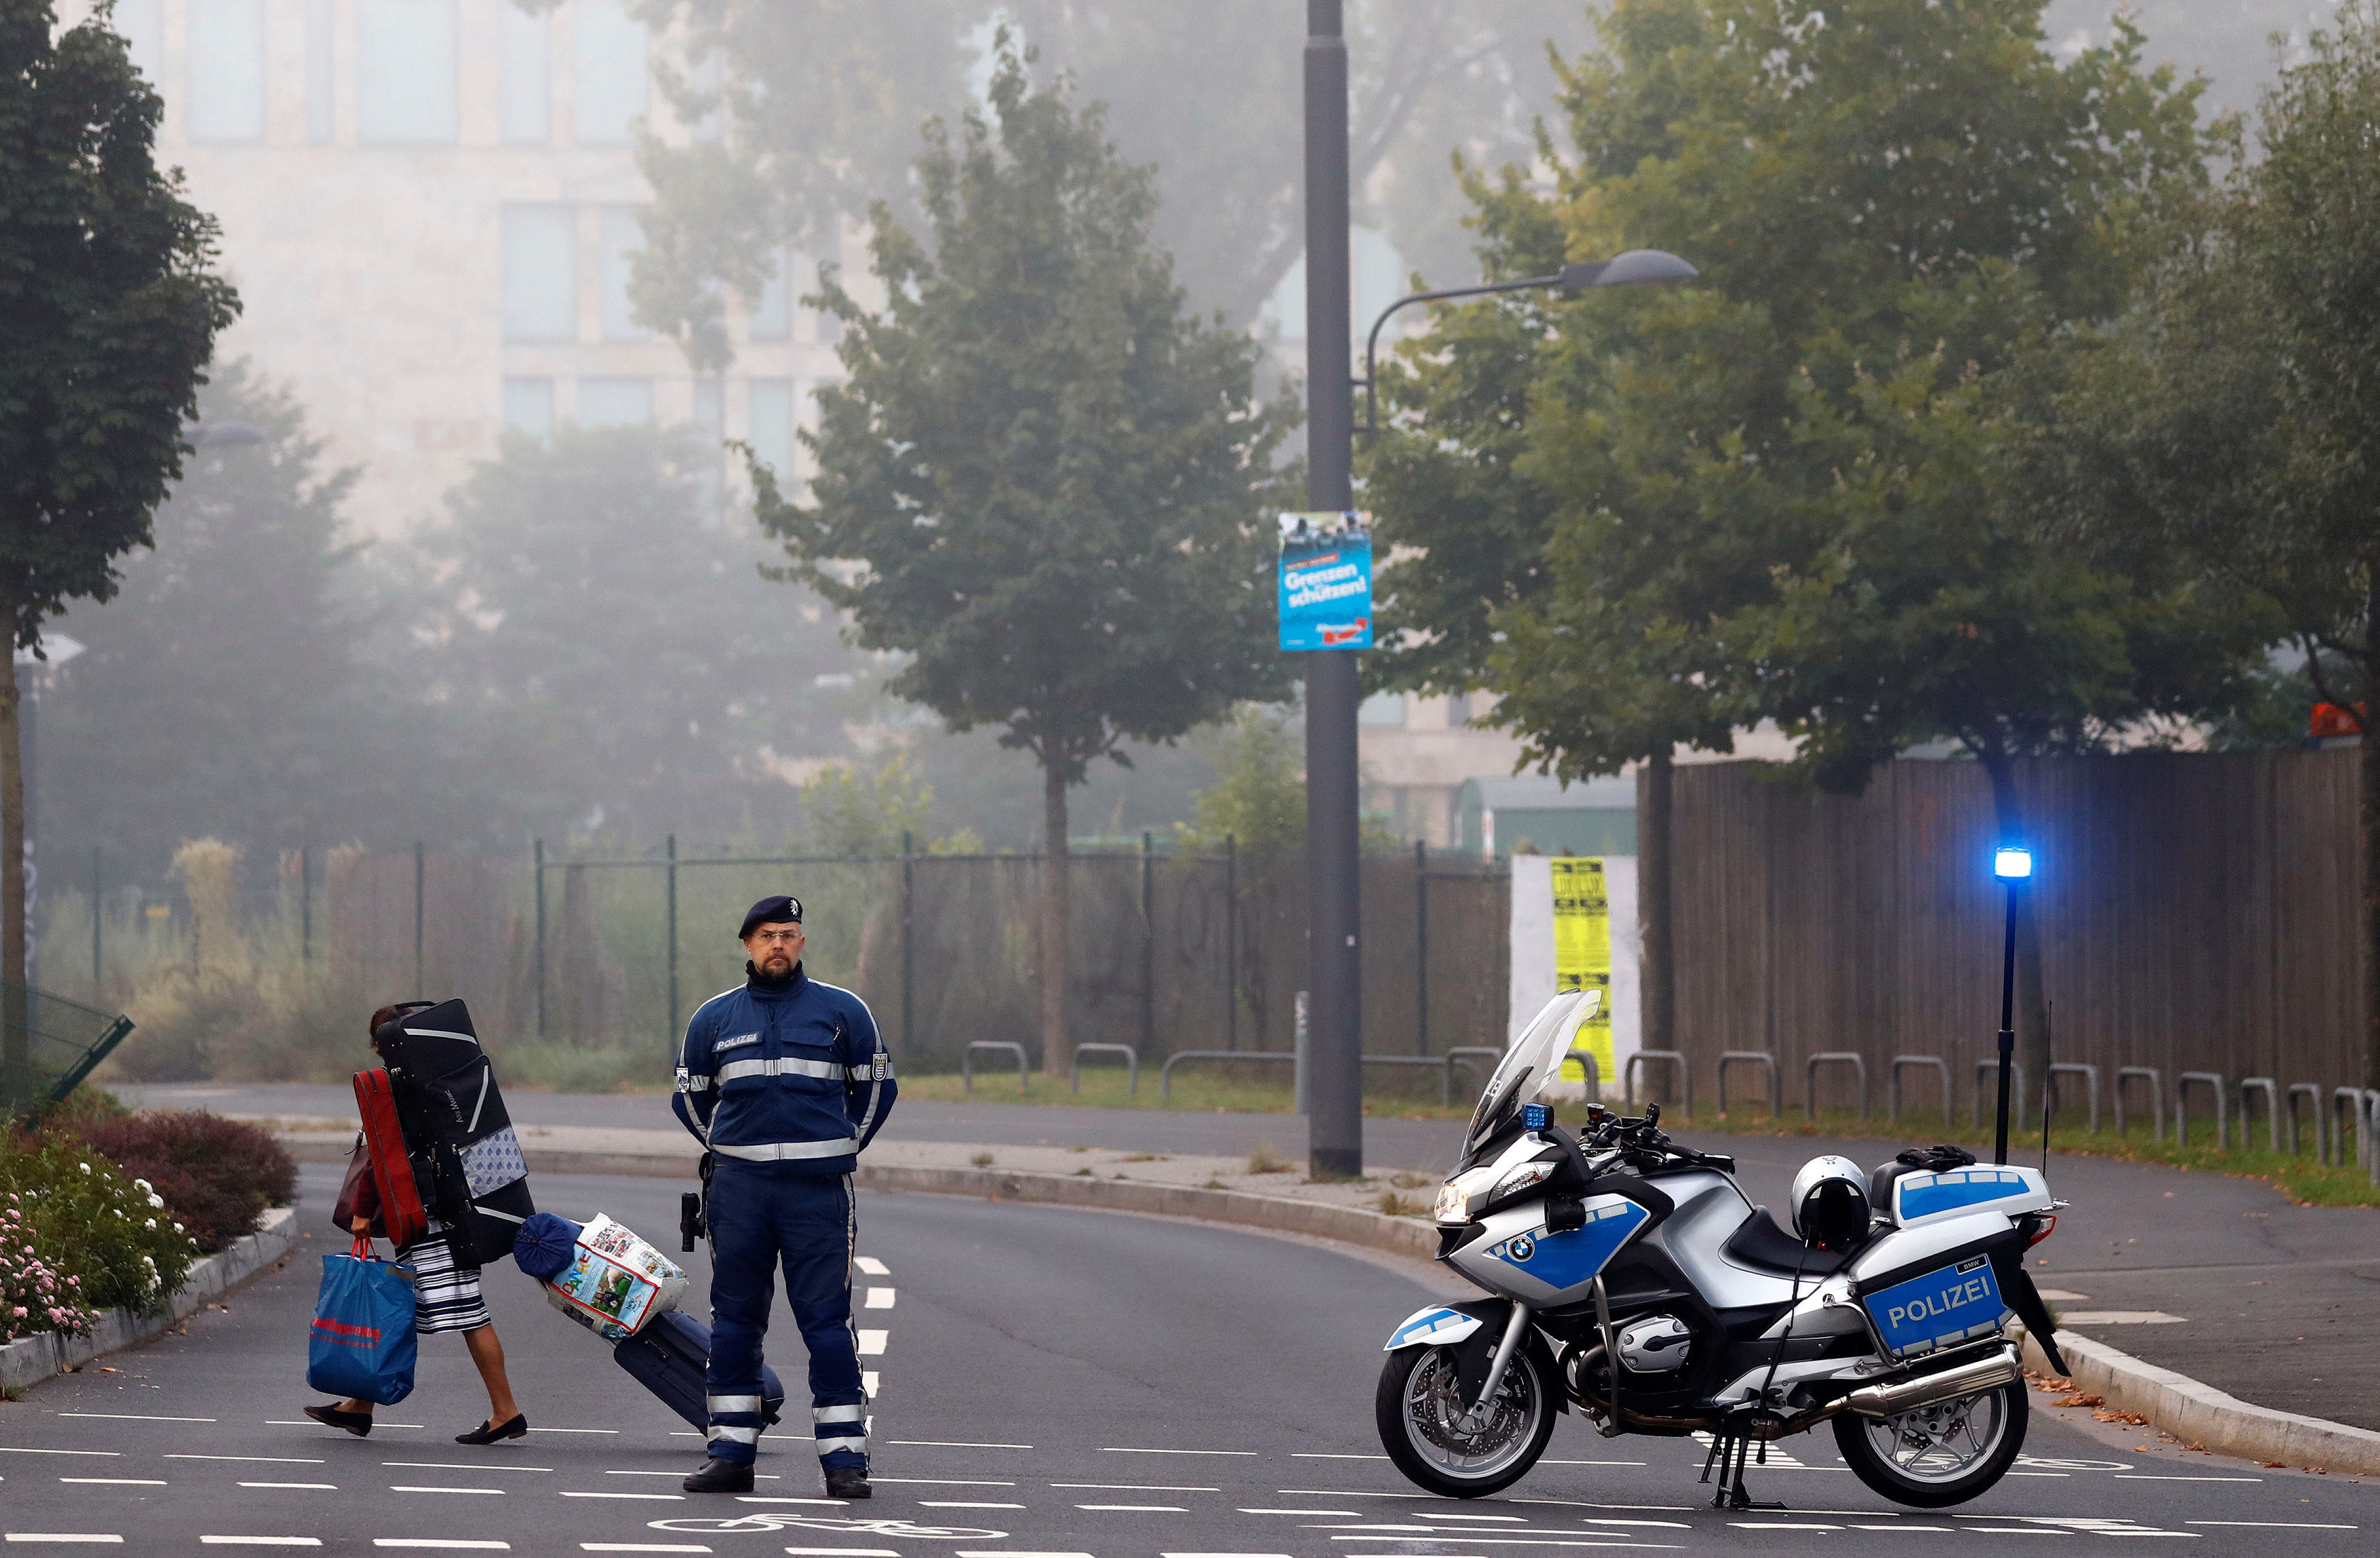 A woman carries her belongings walking past a police officer as some 60,000 people in Germany's financial capital are about to evacuate the city while experts defuse an unexploded British World War Two bomb found during renovations on the university's campus in Frankfurt, Germany on Sept. 3, 2017.  (REUTERS/Kai Pfaffenbach)